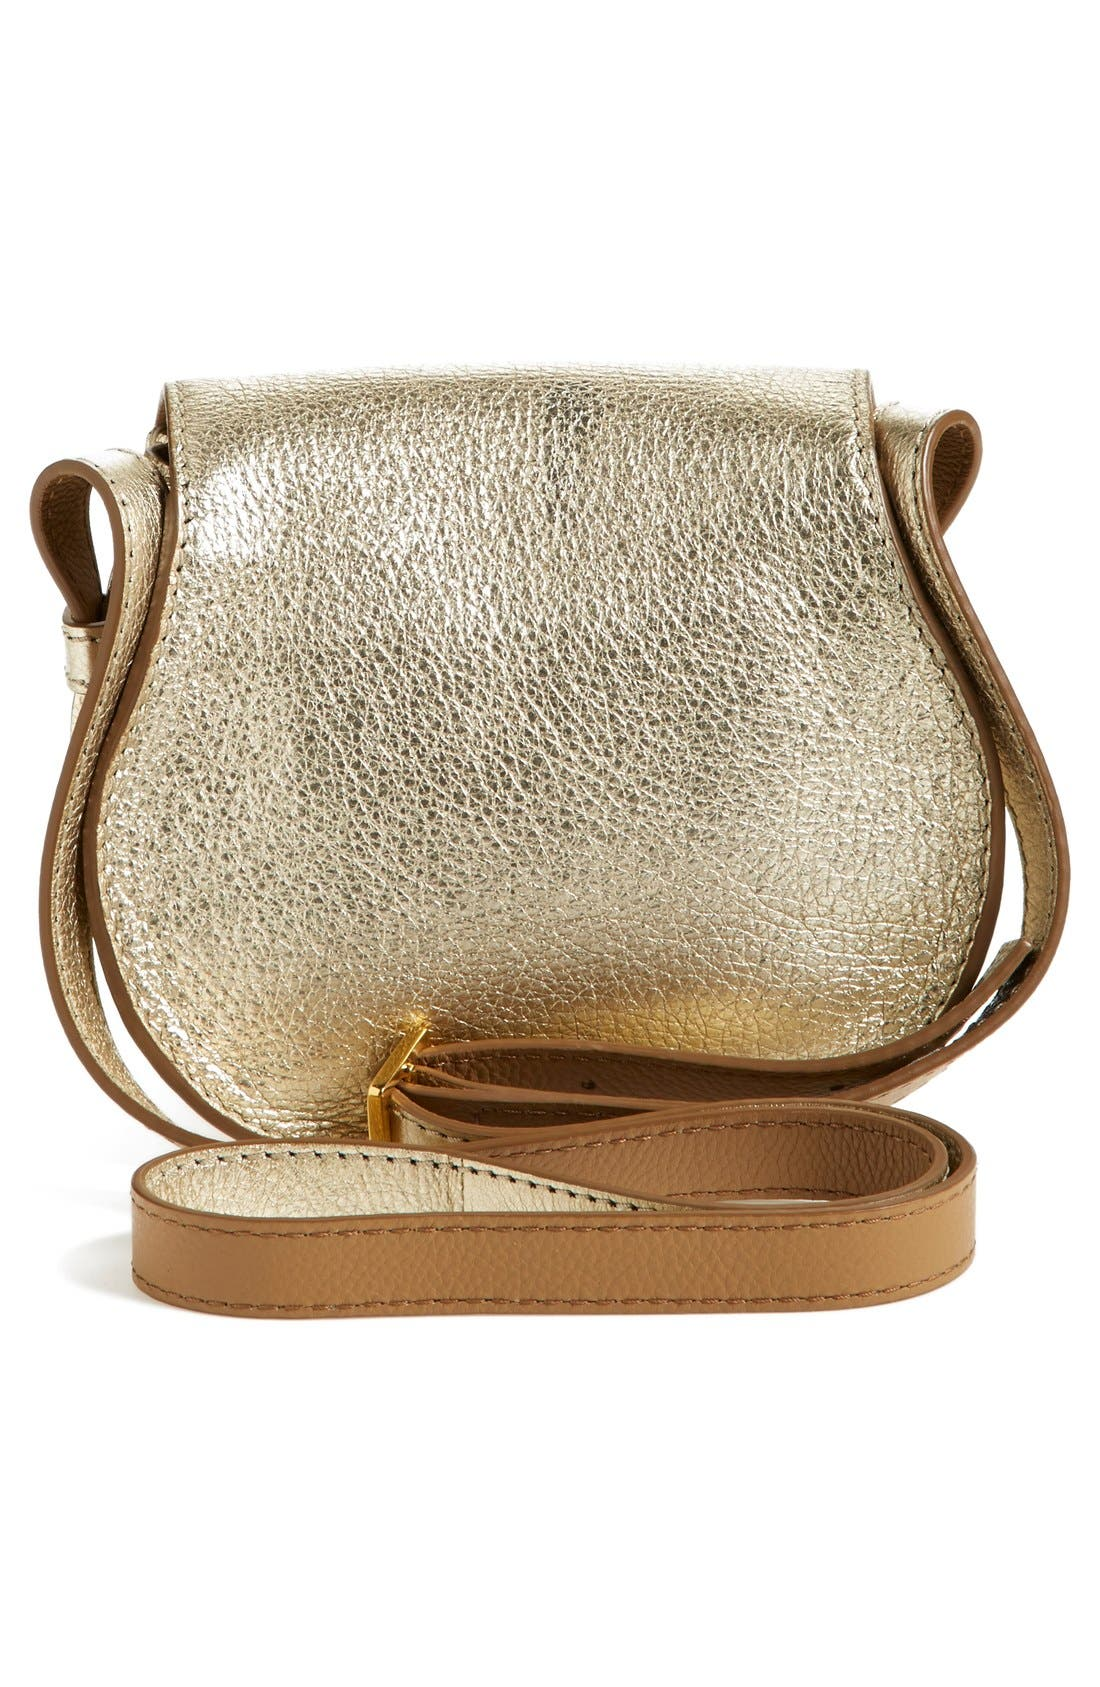 Alternate Image 3  - Chloé 'Marcie - Small' Leather Crossbody Bag